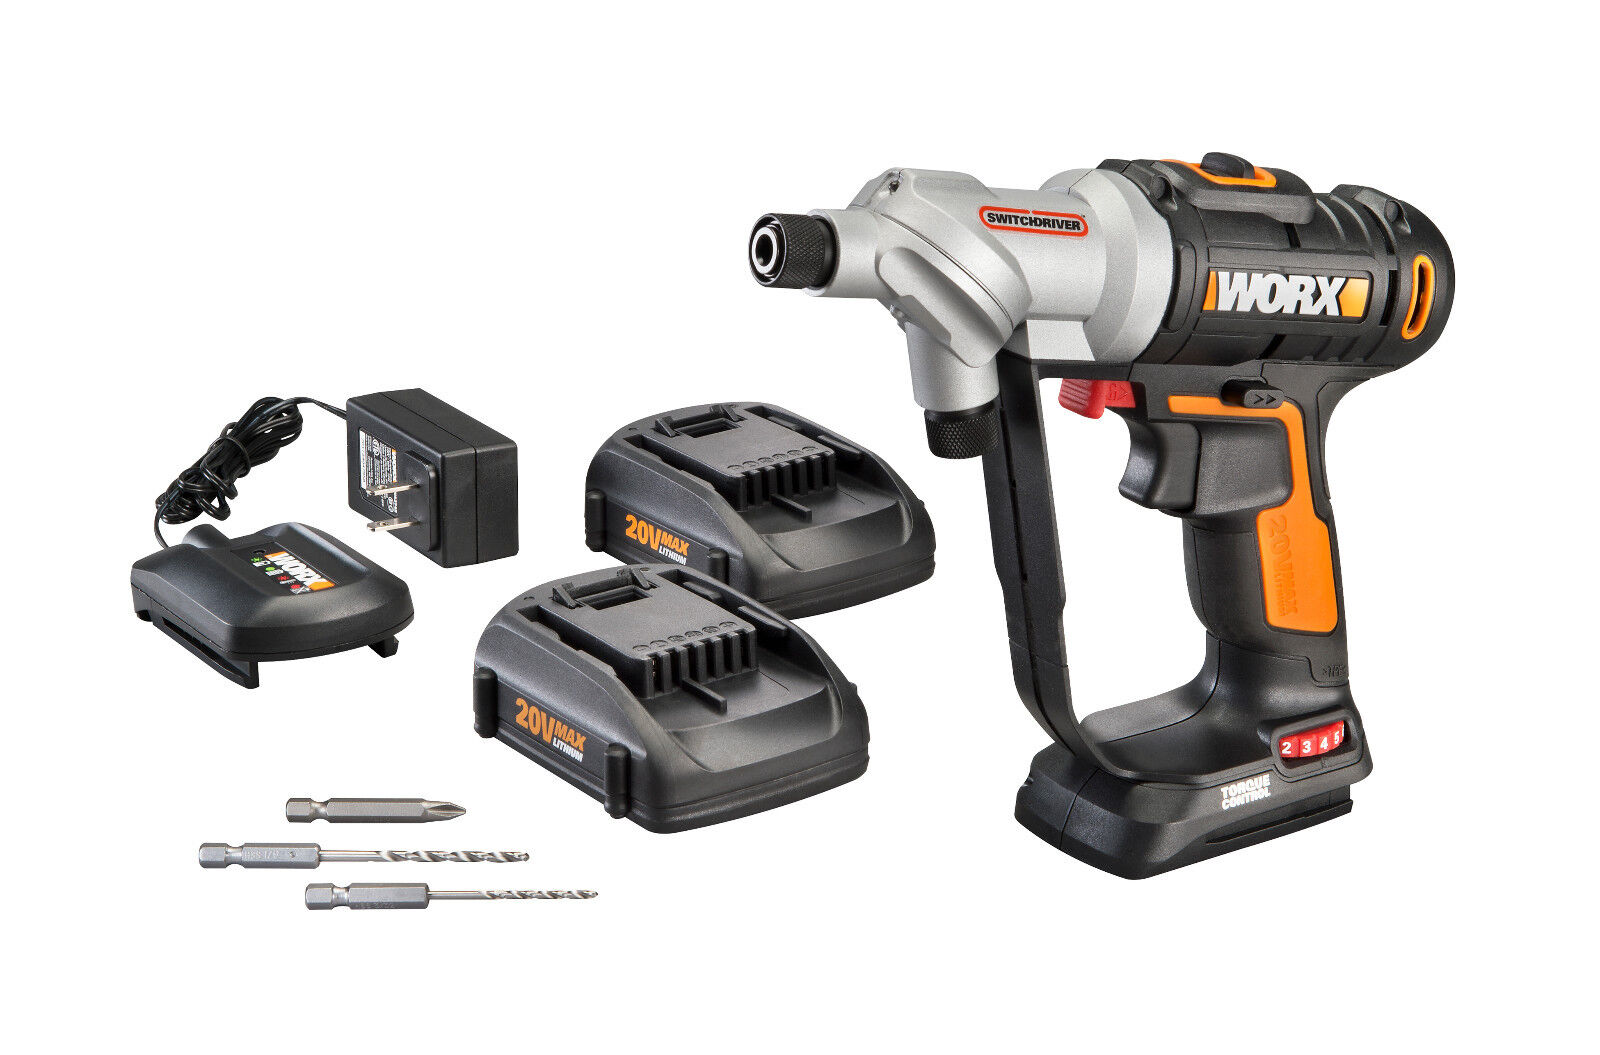 worx-wx176l-5-switchdriver-20v-powershare-cordless-drill-driver-2-batteries